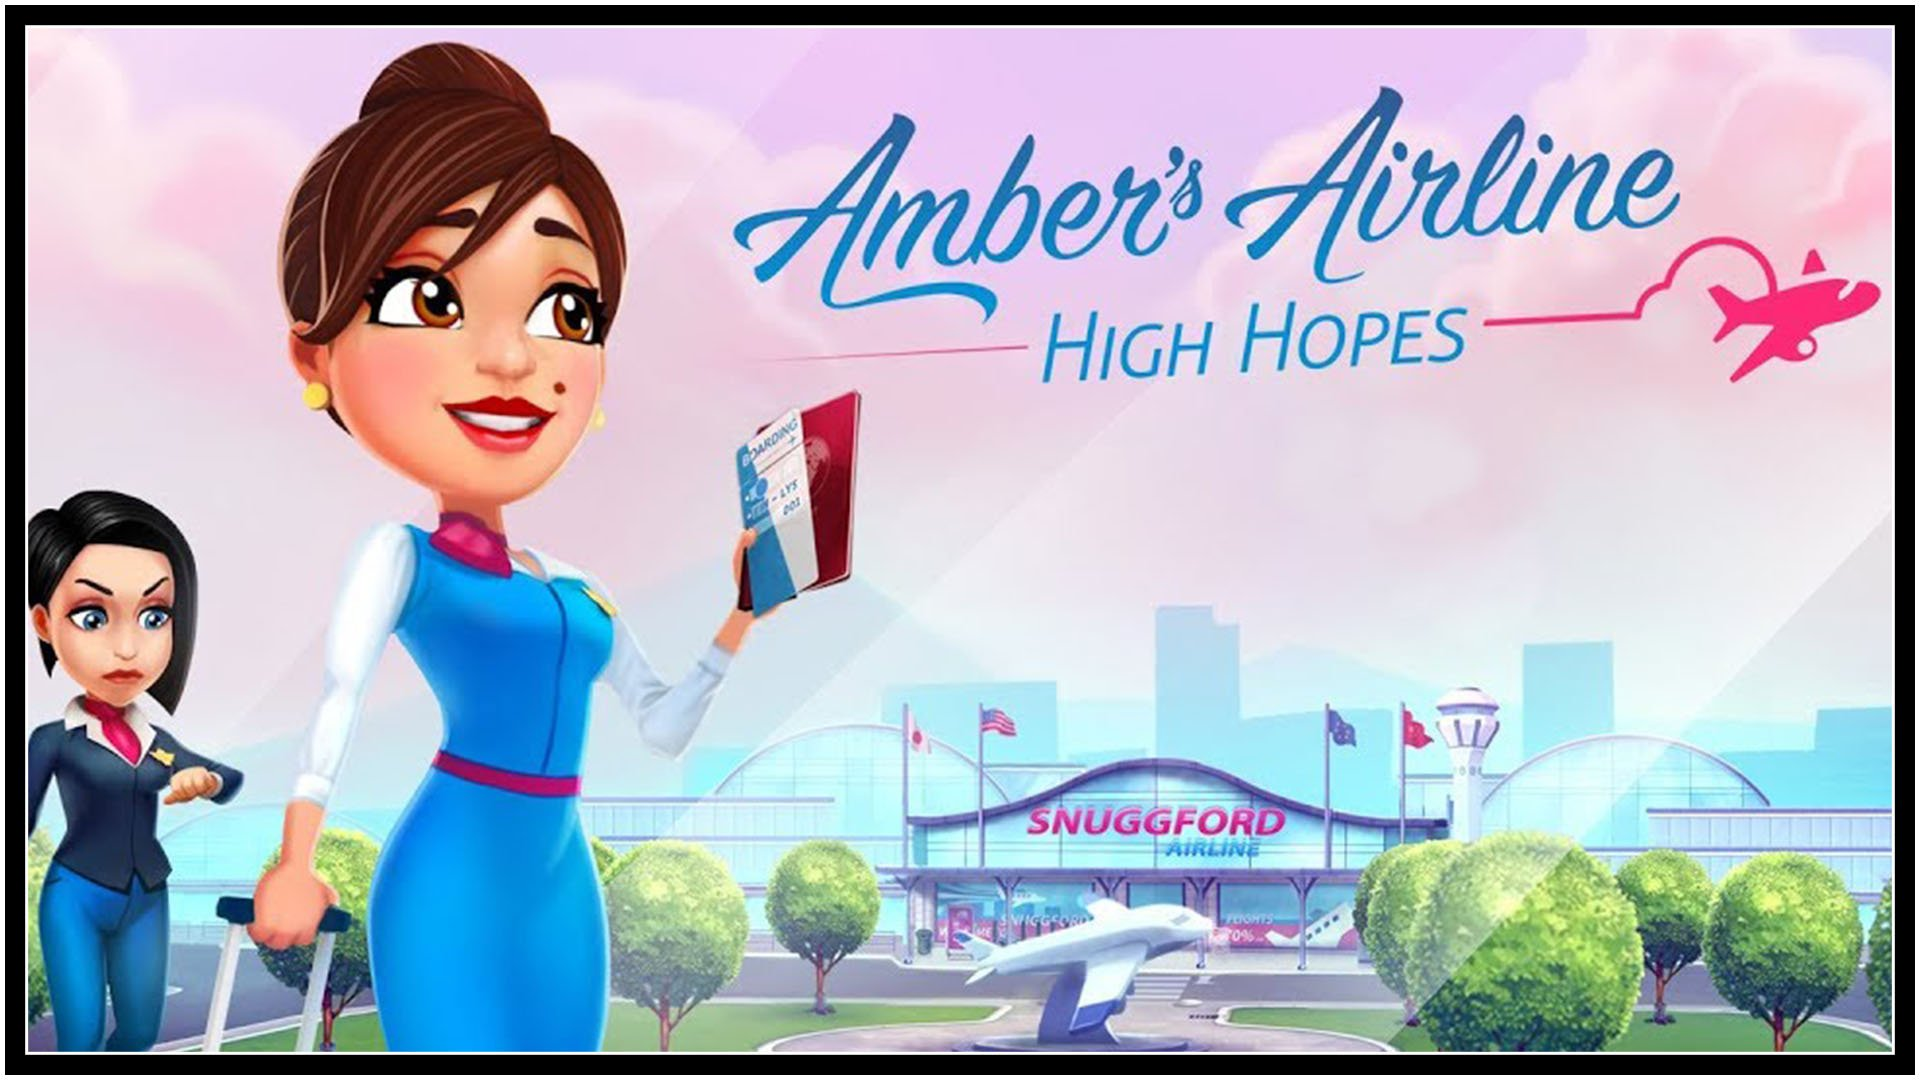 Amber's Airline High Hopes Fi3